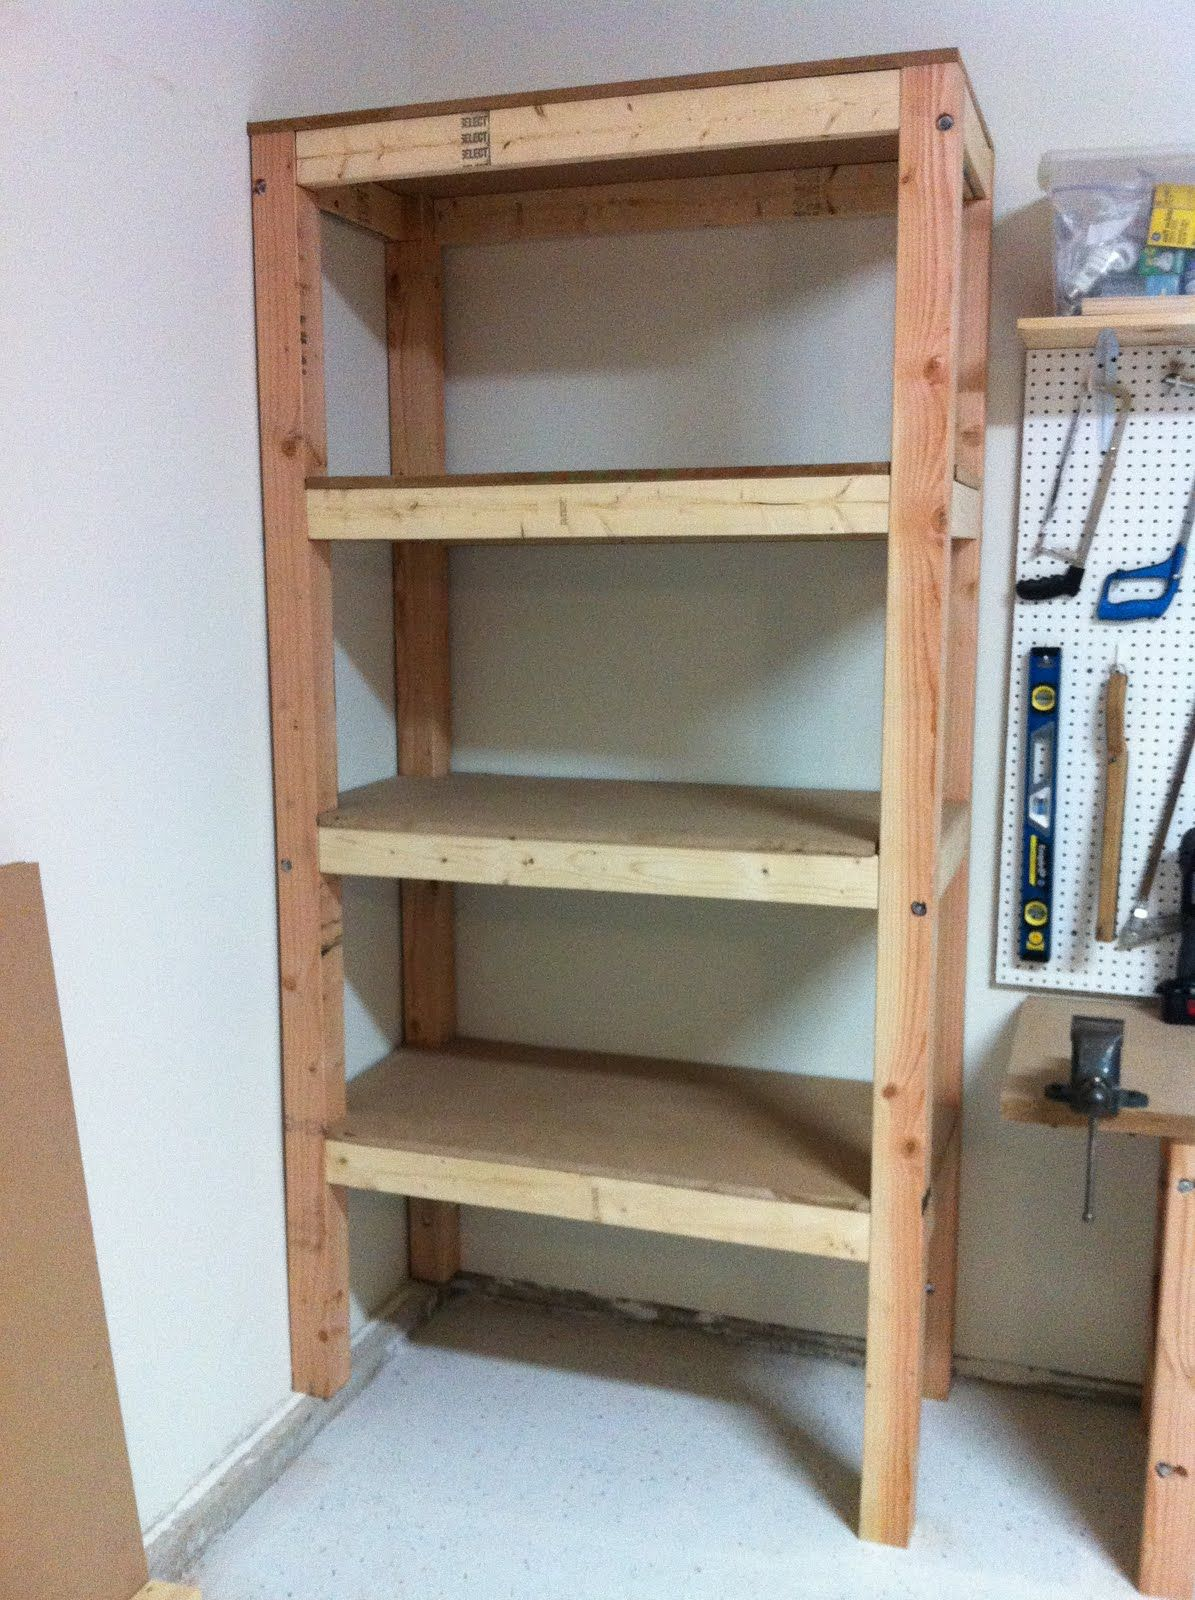 Diy garage shelving ideas shelves 3 4 39 mdf board Cool wood shelf ideas